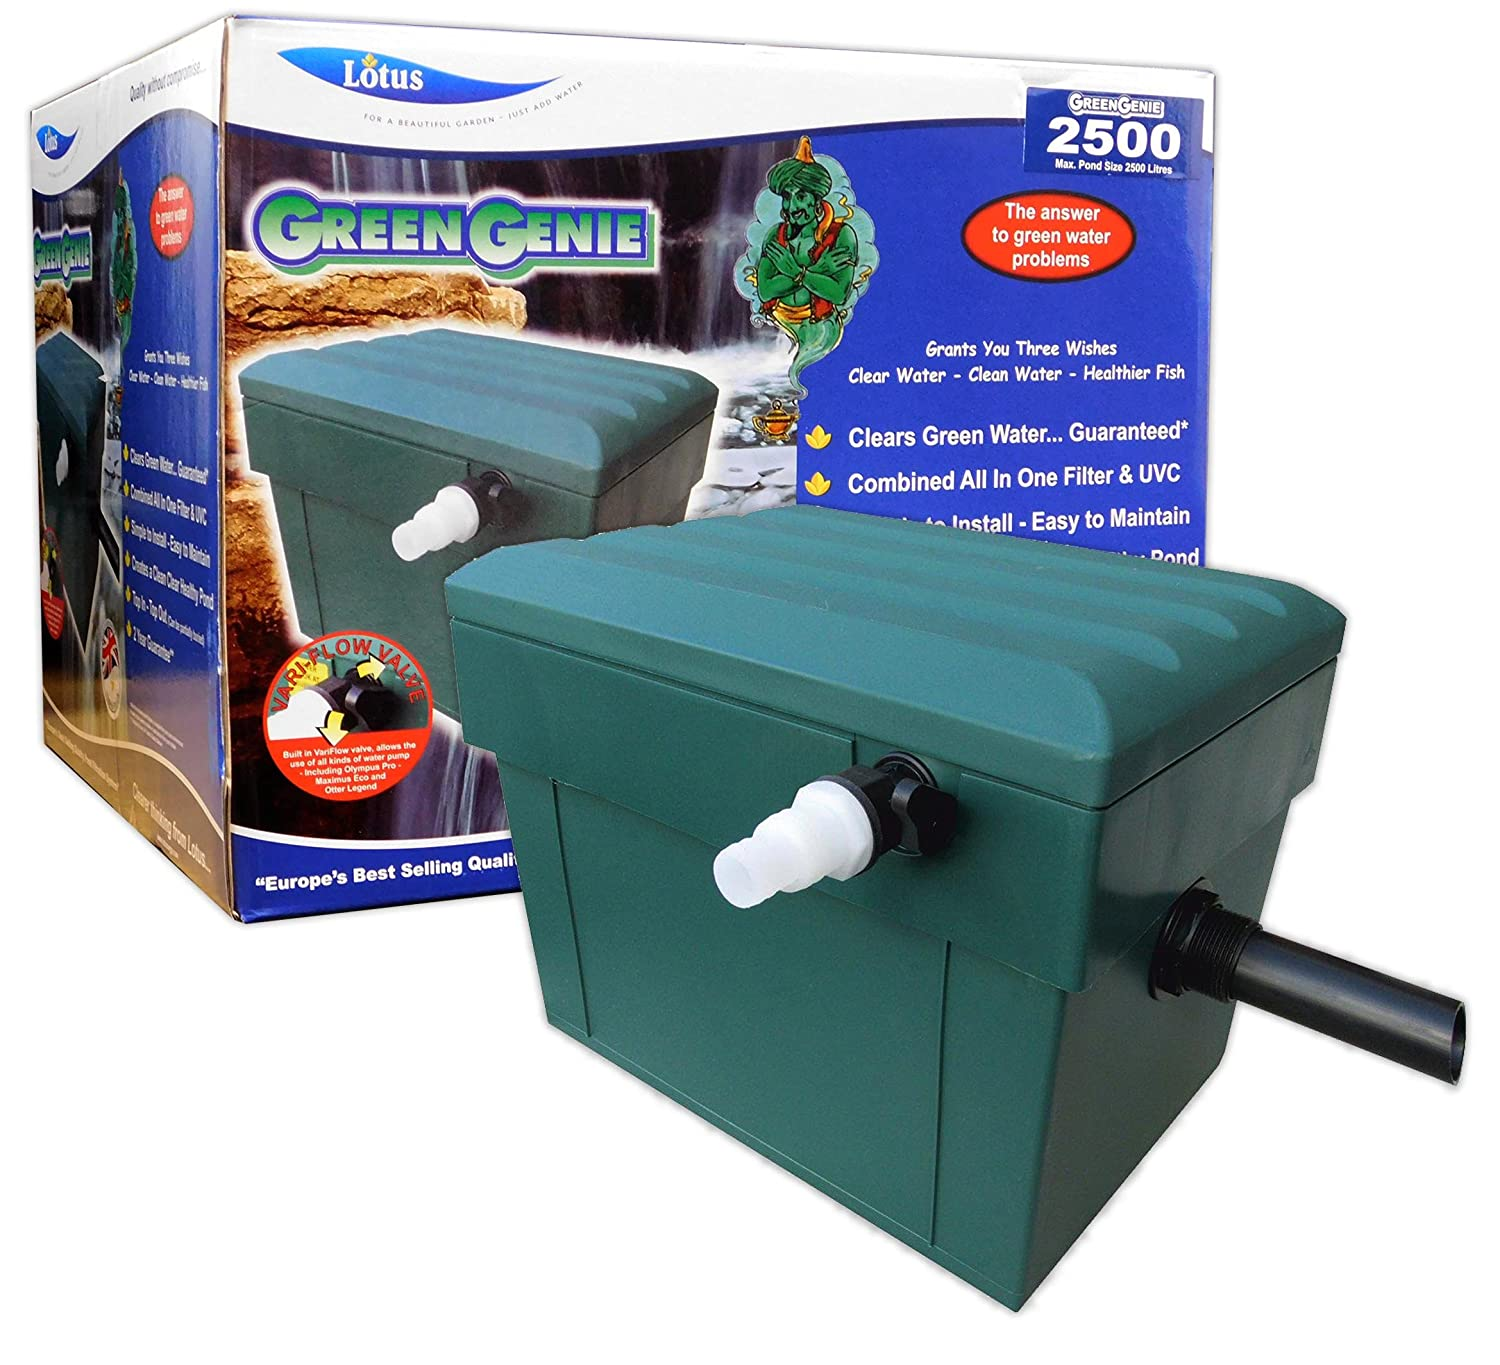 Green Genie Filter, 2500 Litre